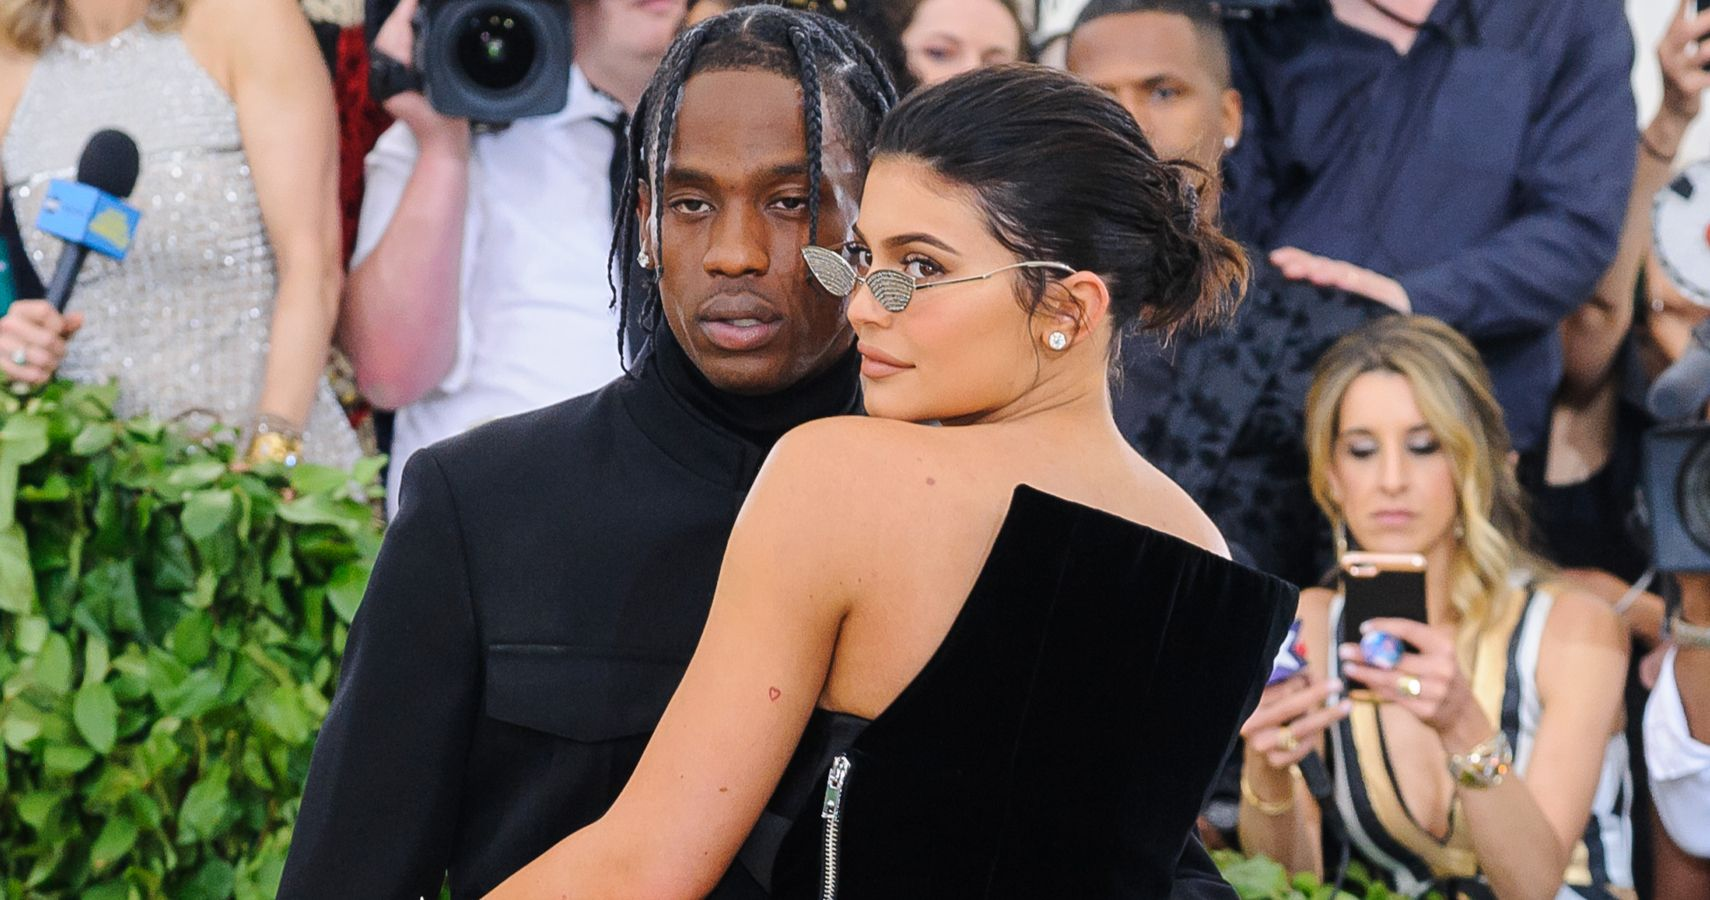 Kylie Jenner And Travis Scott's Rental House In NYC For Sale